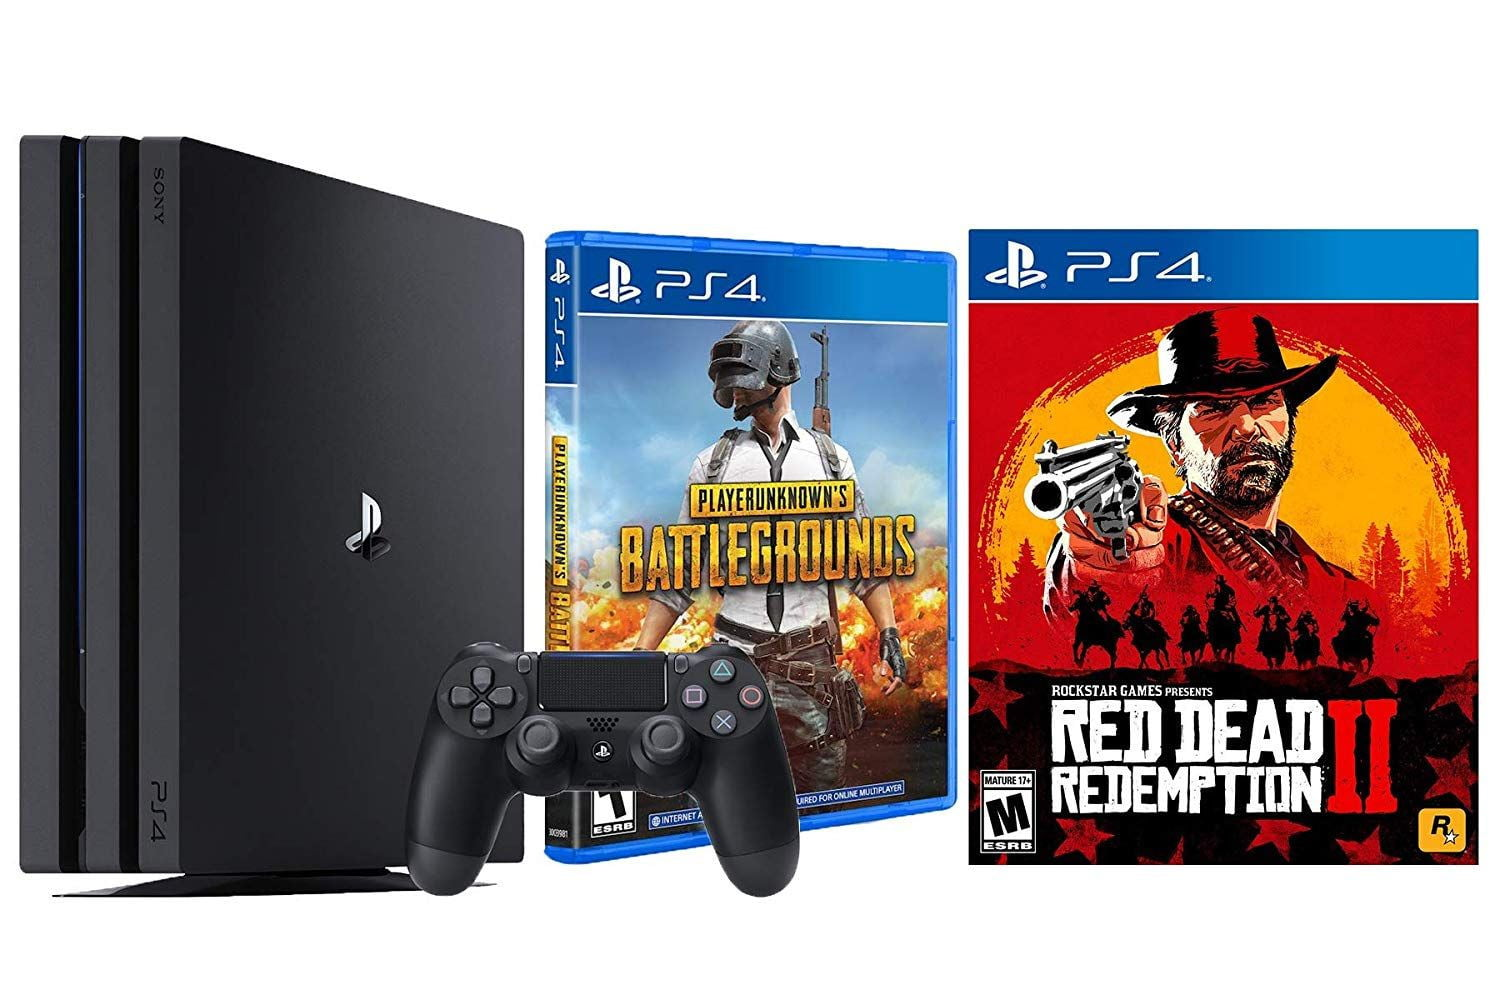 The Best Gaming Deals for January 2021